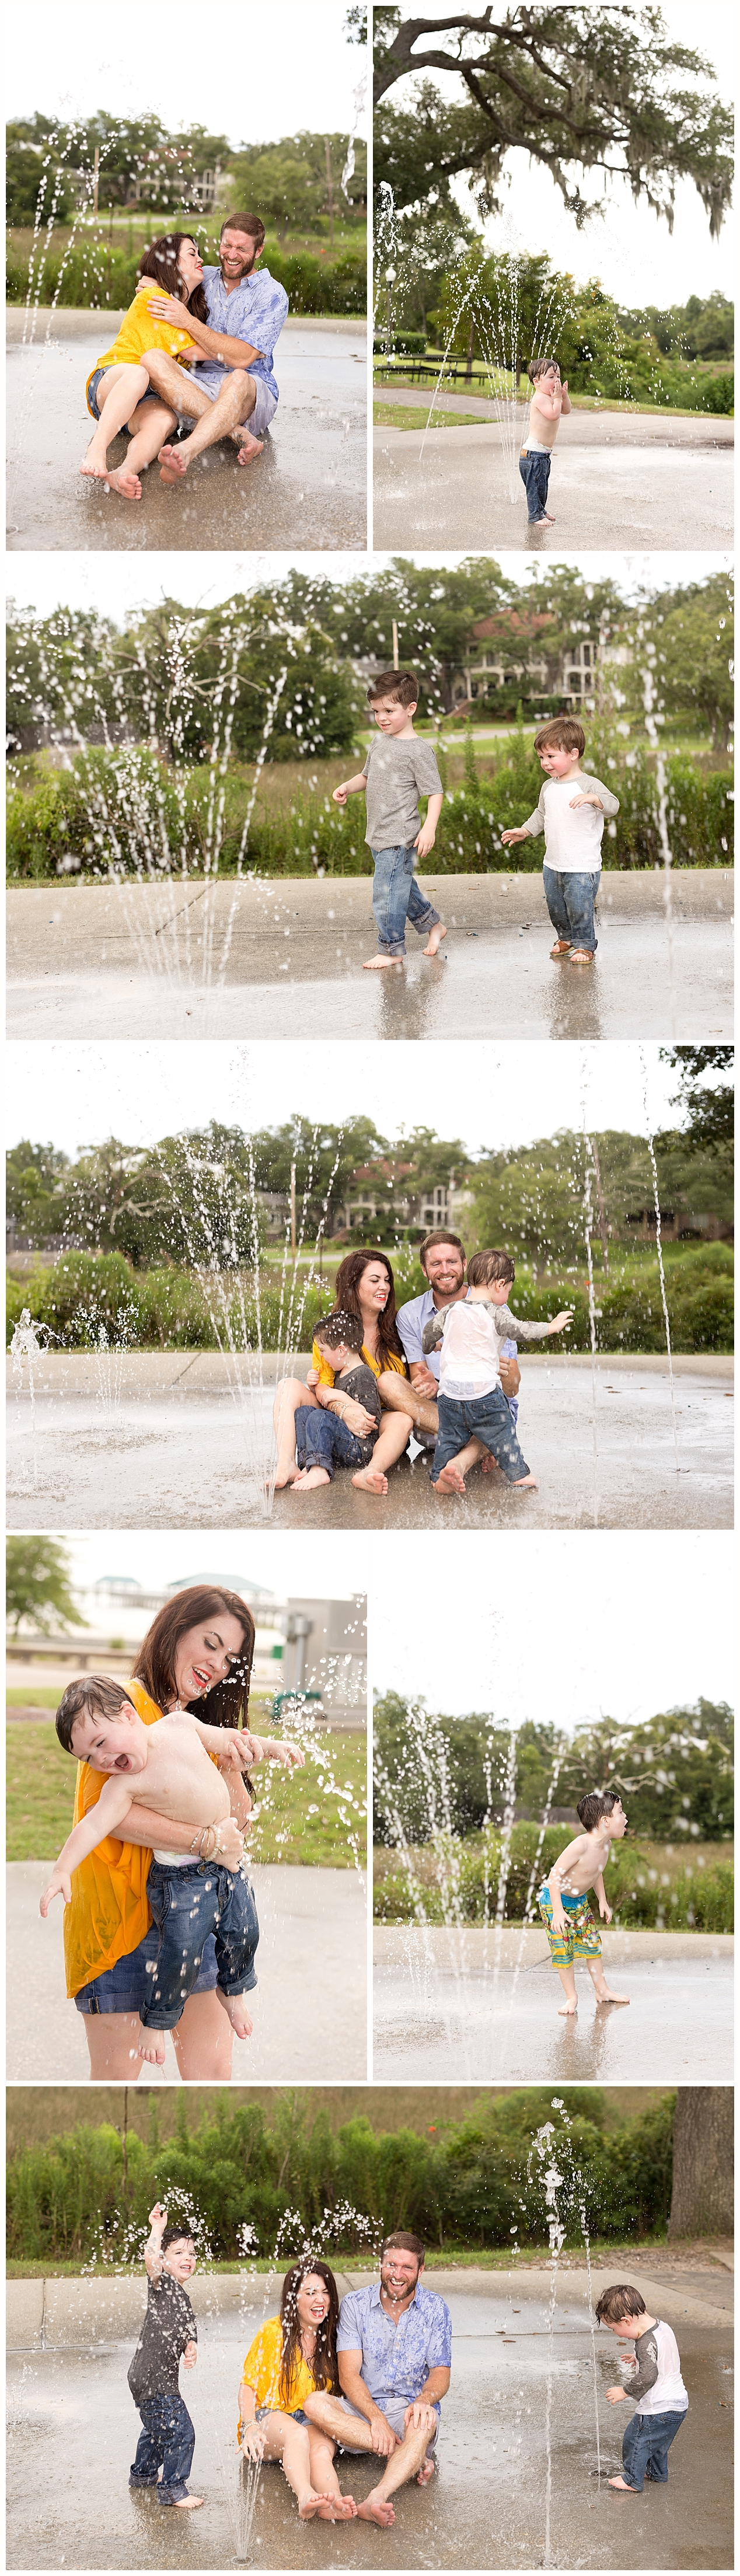 family having fun at the Fort Maurepas Splash Park - Ocean Springs, Mississippi family photographer